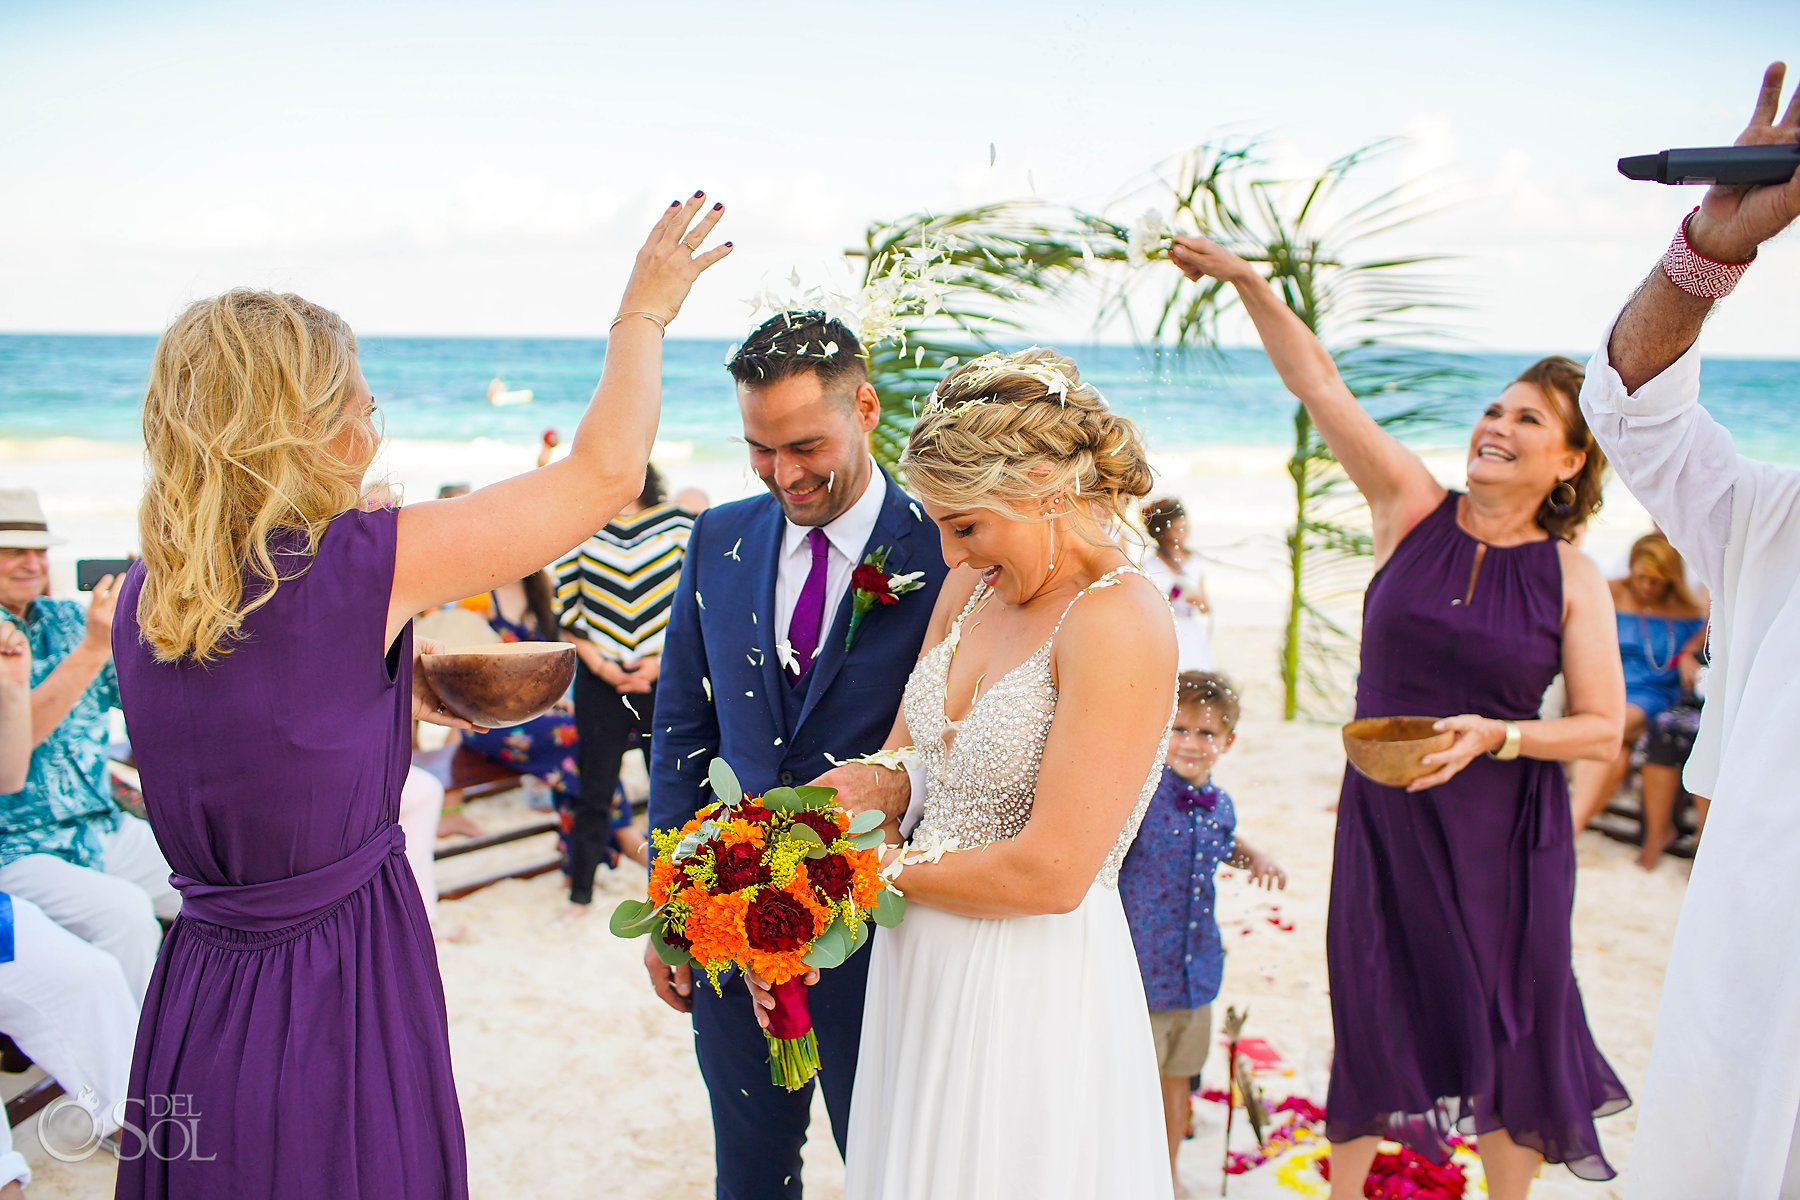 cosmic wedding ceremony Akiin Tulum Mexico